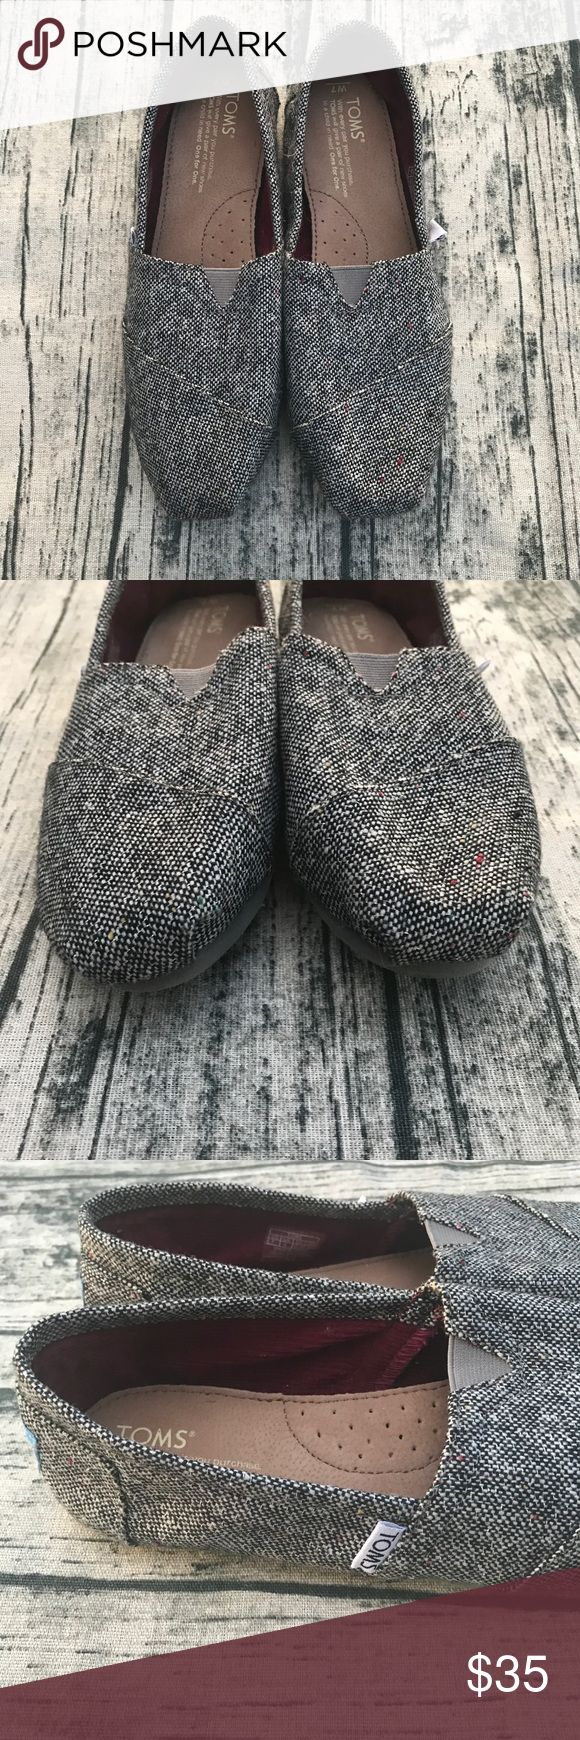 [TOMS] Charcoal Speckled Tweed These are adorable Charcoal Speckled Tweed Toms. They are in excellent used condition.   •No trades, please ask any questions•  •slip ons, flats, grey, gray• Toms Shoes Flats & Loafers